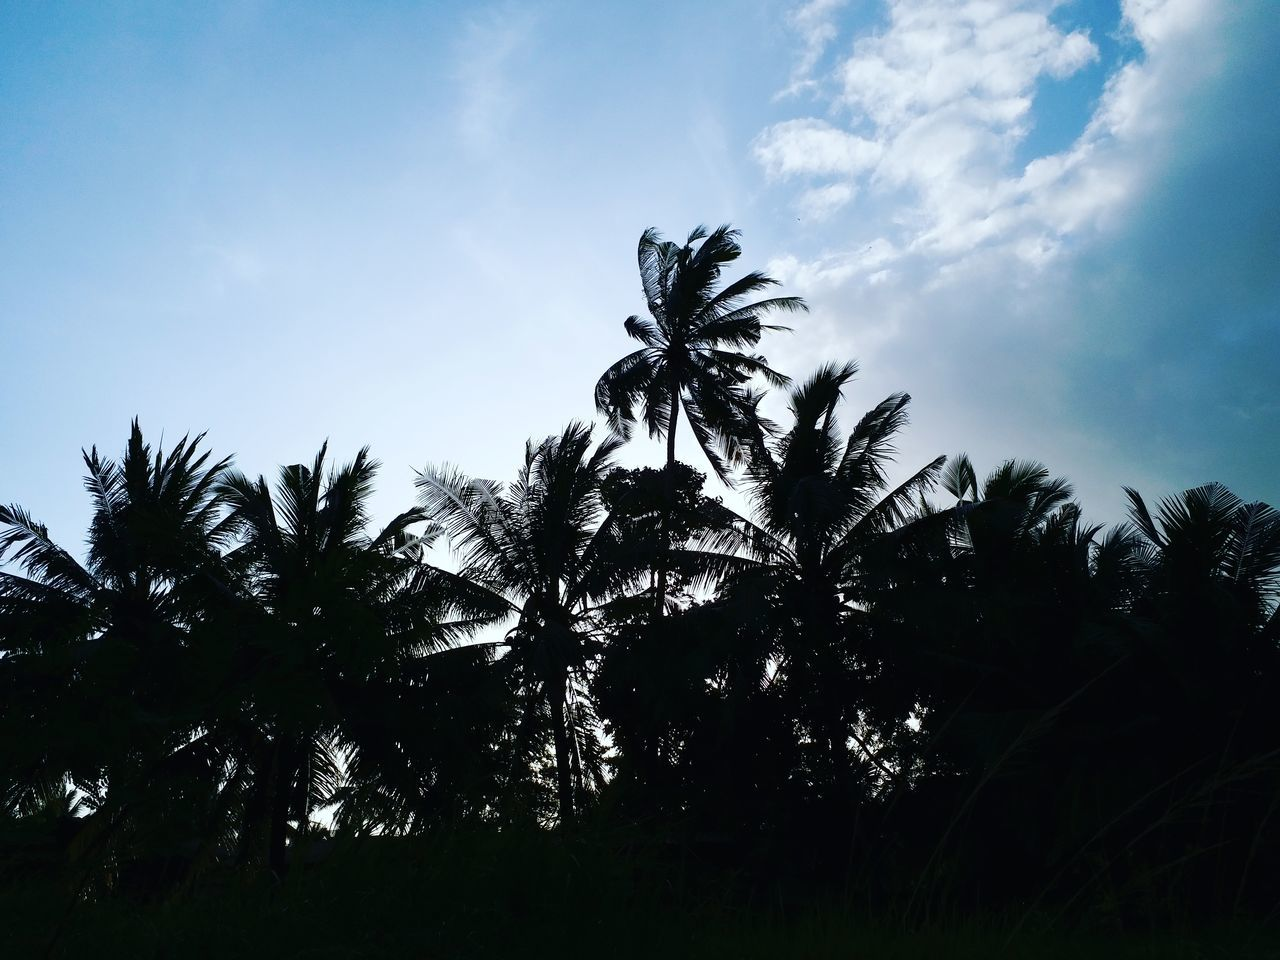 tree, palm tree, nature, sky, low angle view, growth, beauty in nature, no people, tranquility, outdoors, day, silhouette, scenics